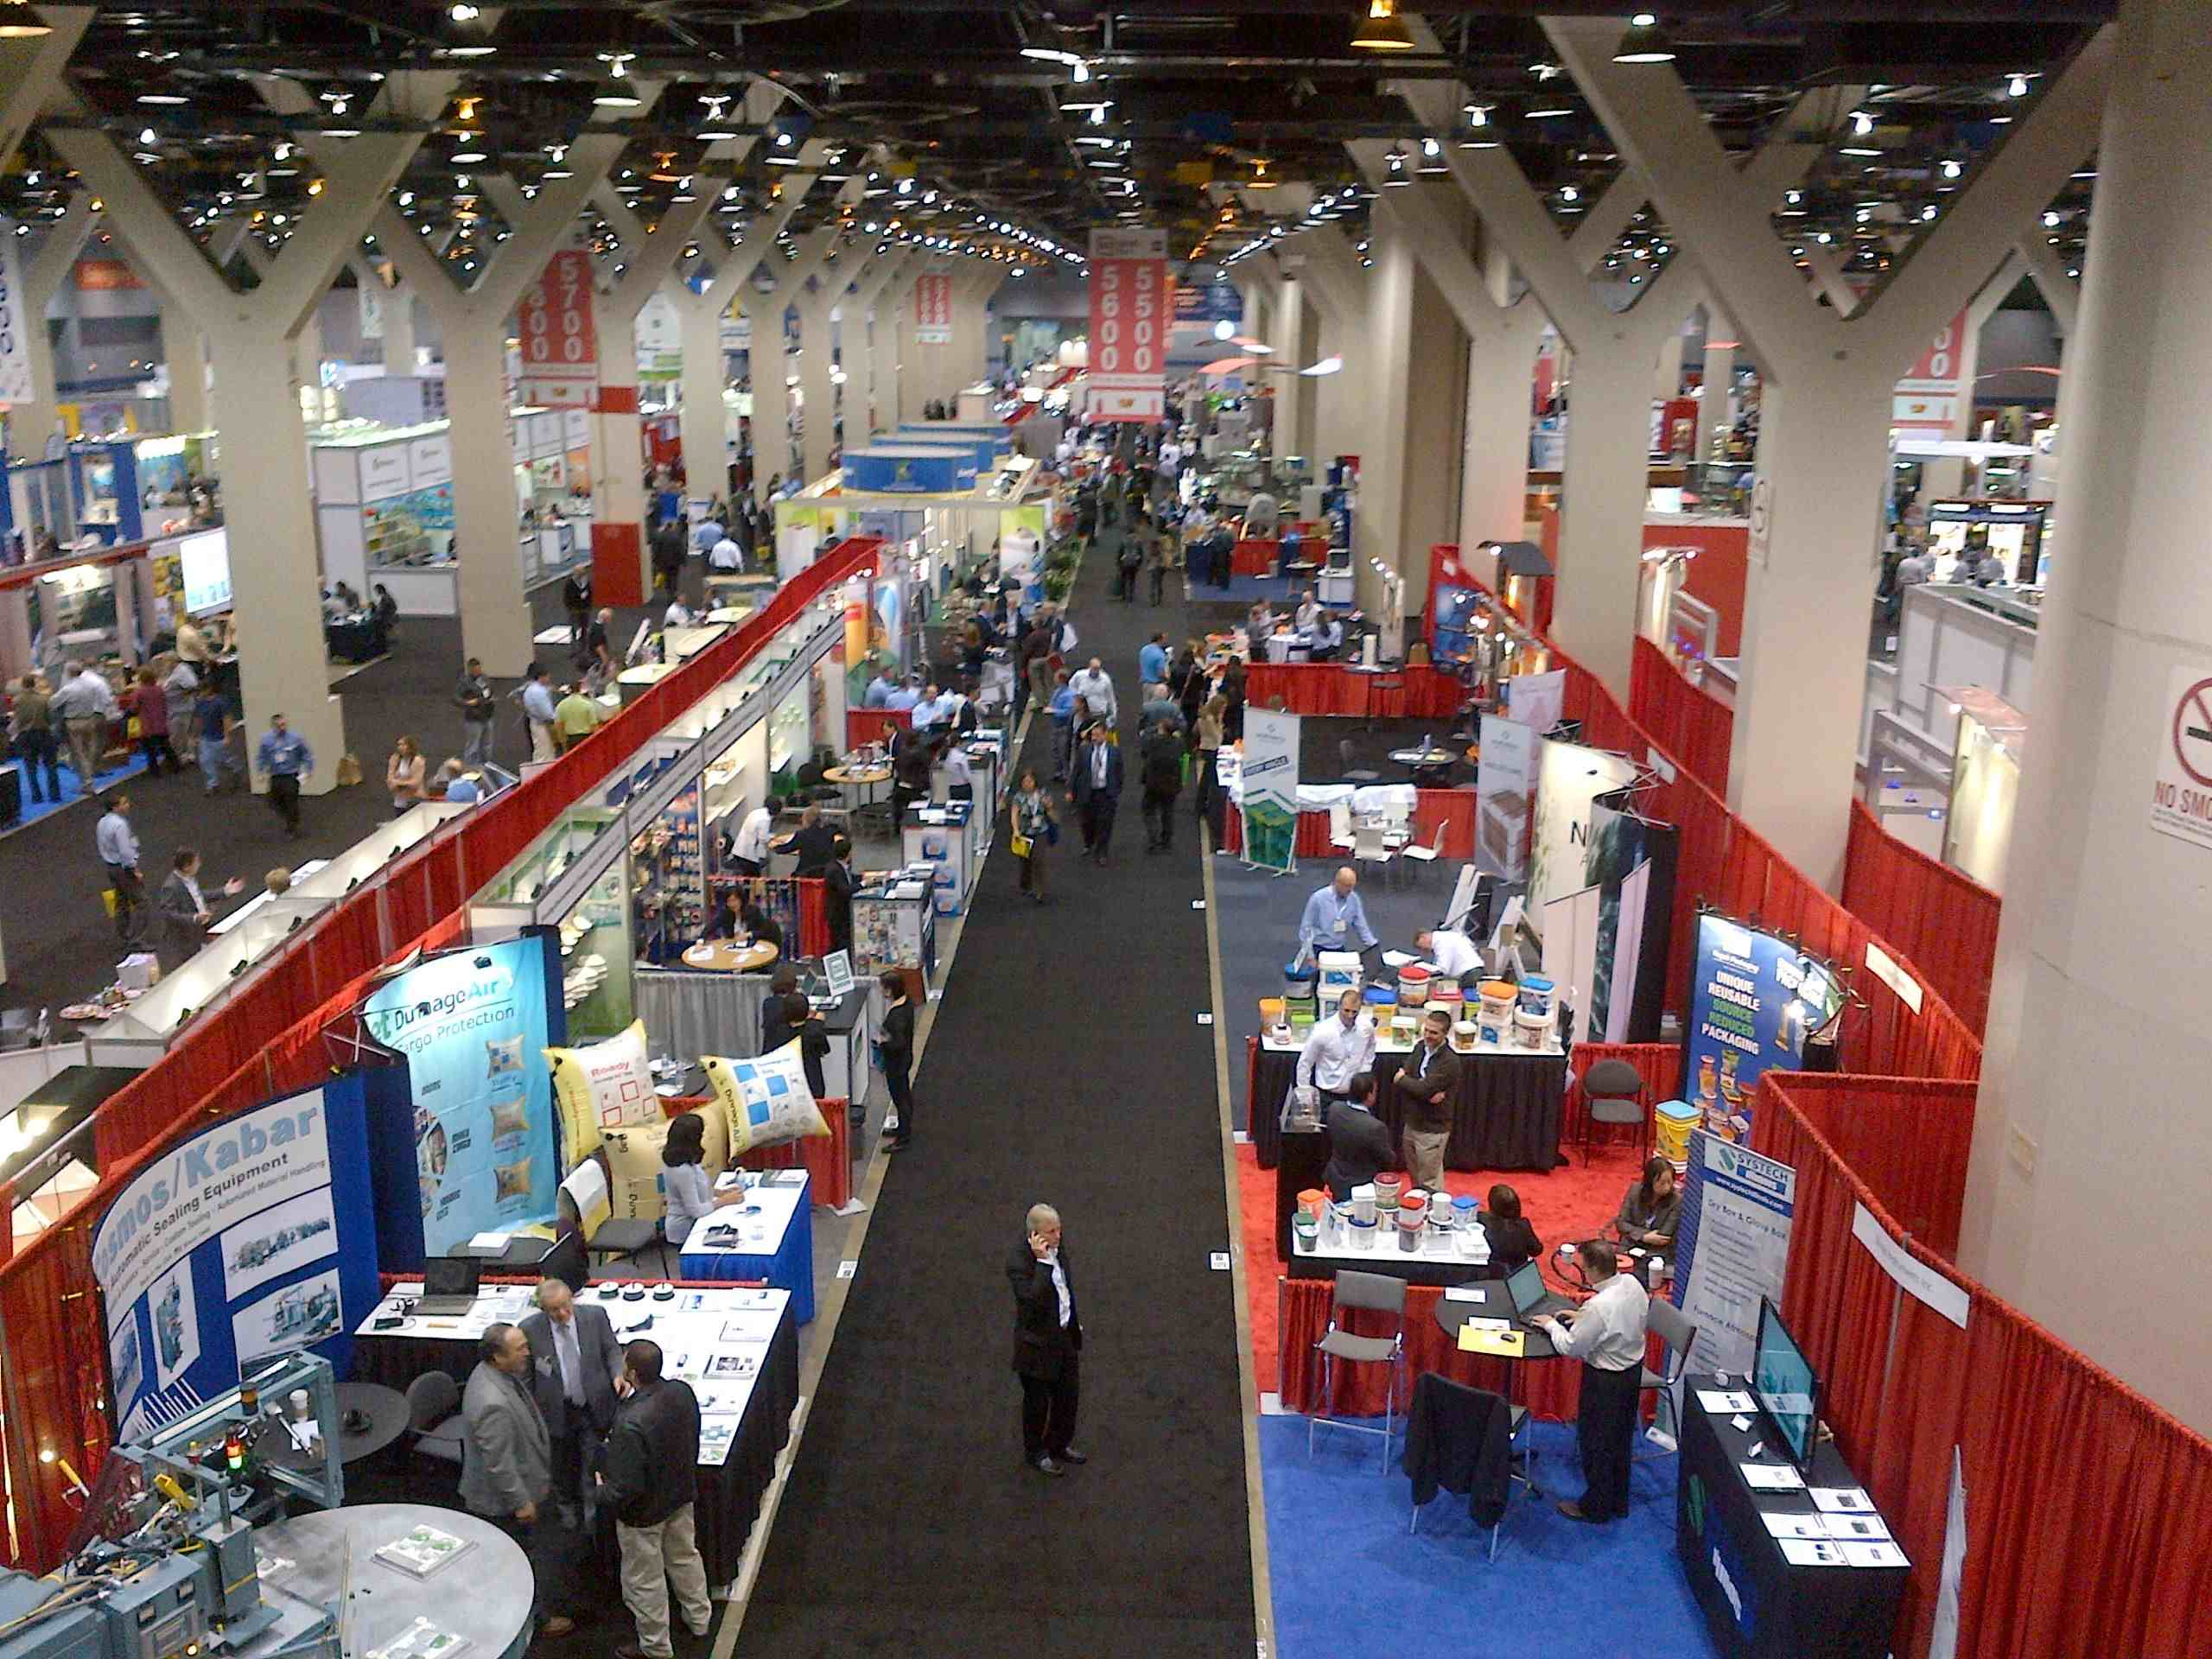 Exhibition Booth Checklist : Customer attraction trade show exhibitor checklist things